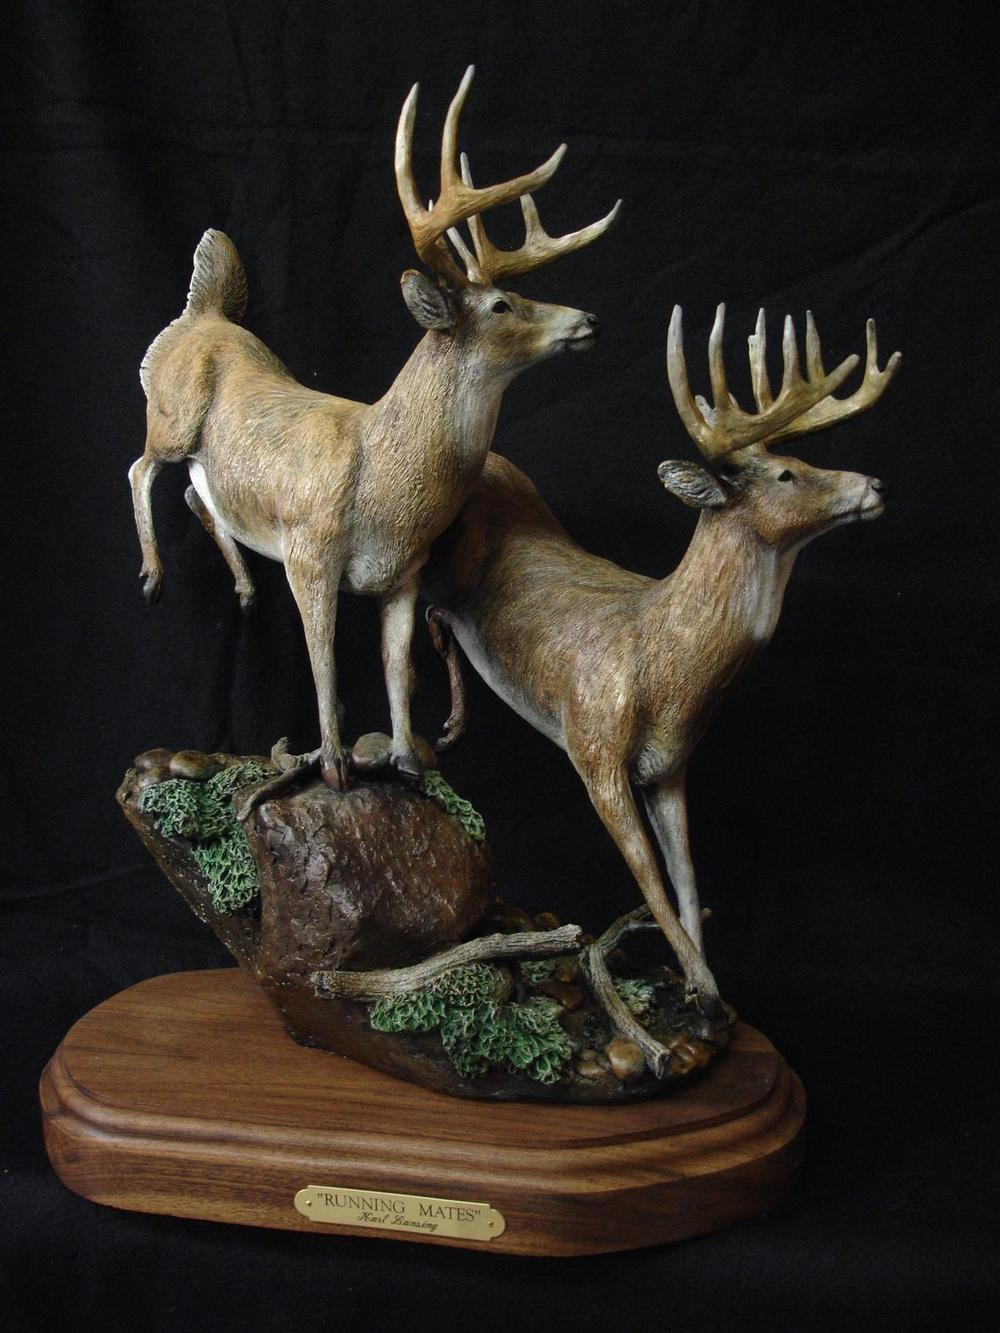 "Running Mates16""L 19""H 9""W - ed./30 - Wildlife Bronze Sculpture Bronze Sculpture of North American Animals Bronze Big Game Animal Statues"